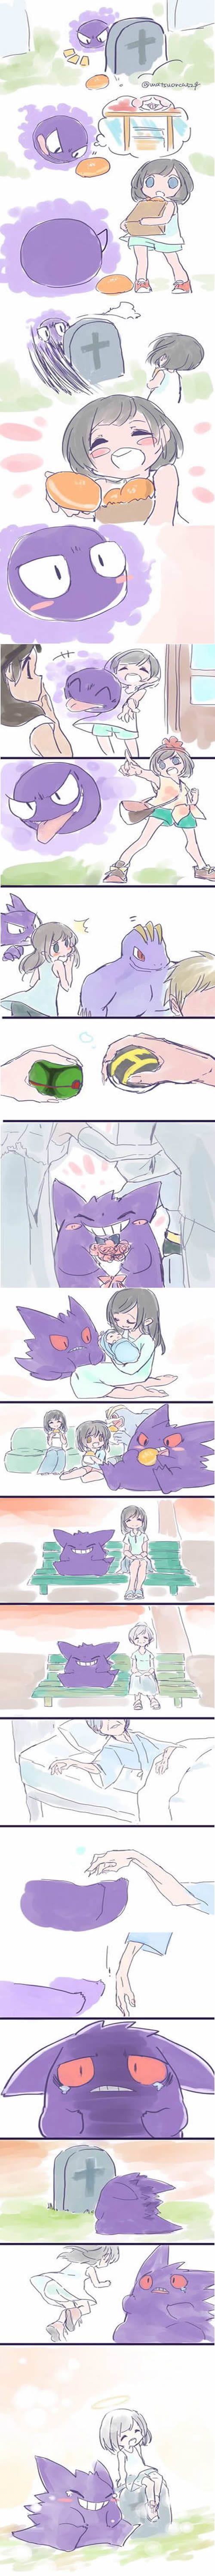 This Story About Gengar By The Grave Will Give You All The Feels (By matsuorca524)